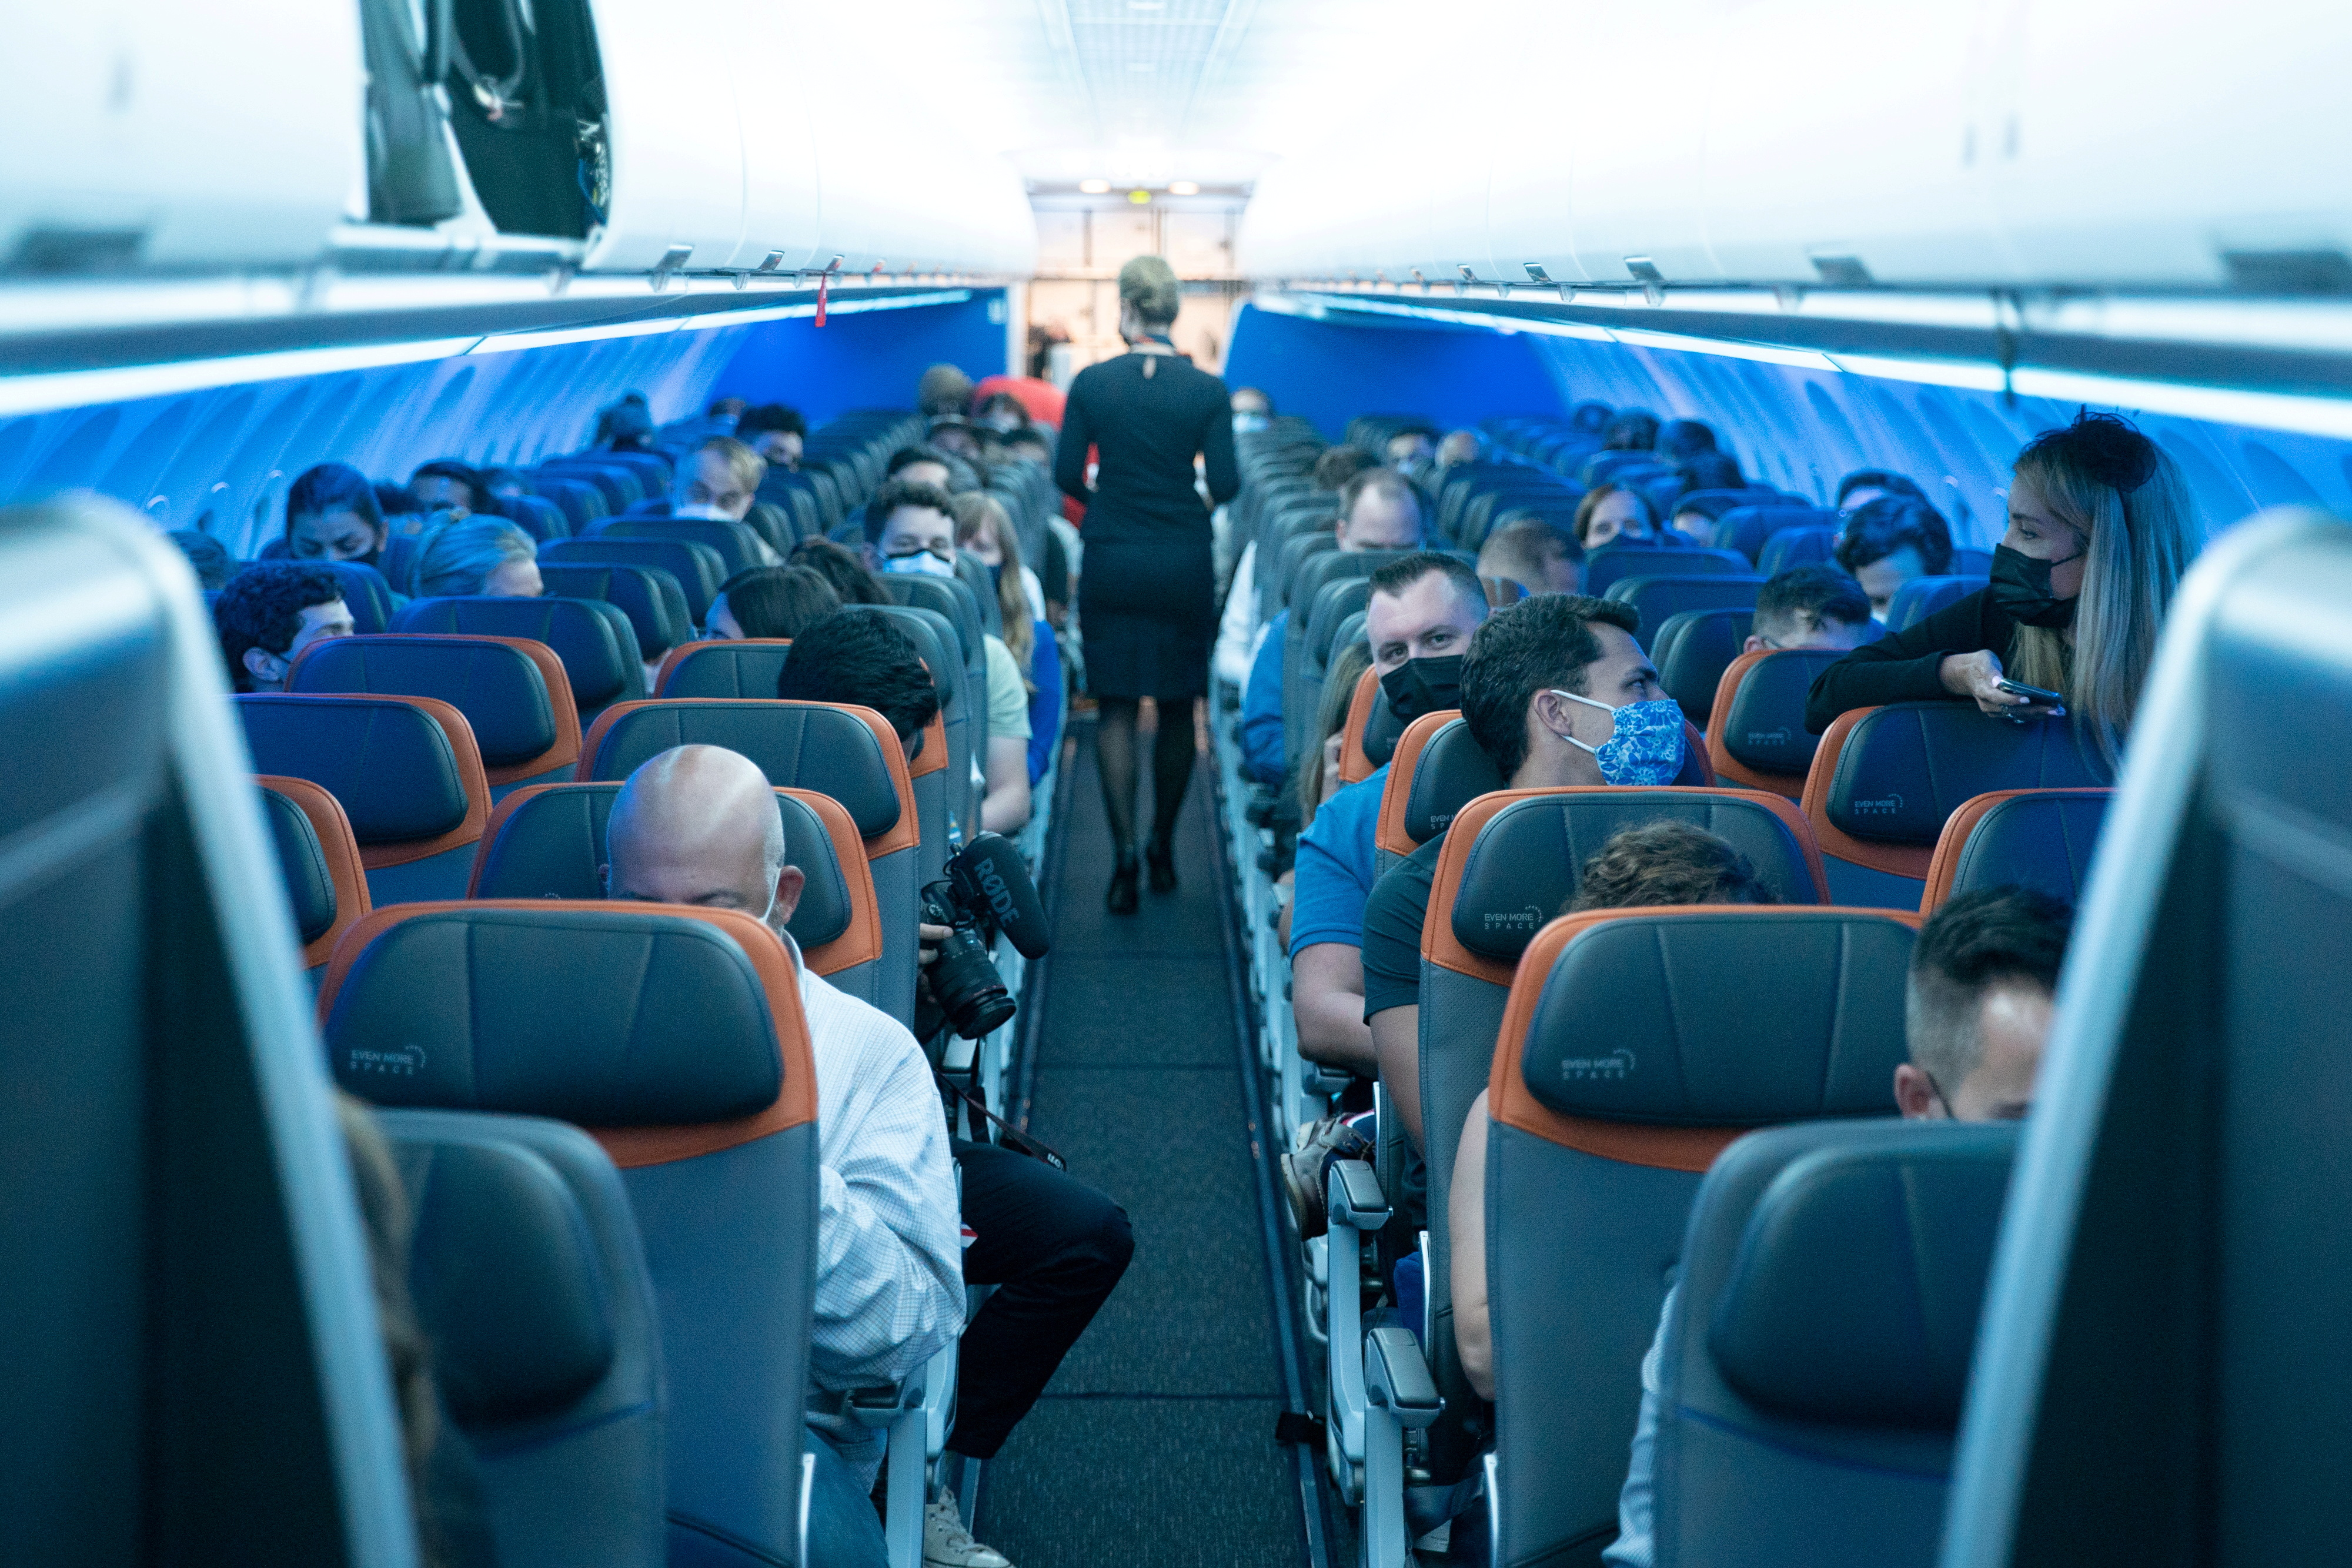 Passengers wearing protective masks are seen aboard before a JetBlue flight to London at JFK International Airport in the Queens borough of New York City, New York, U.S., August 11, 2021. REUTERS/Jeenah Moon